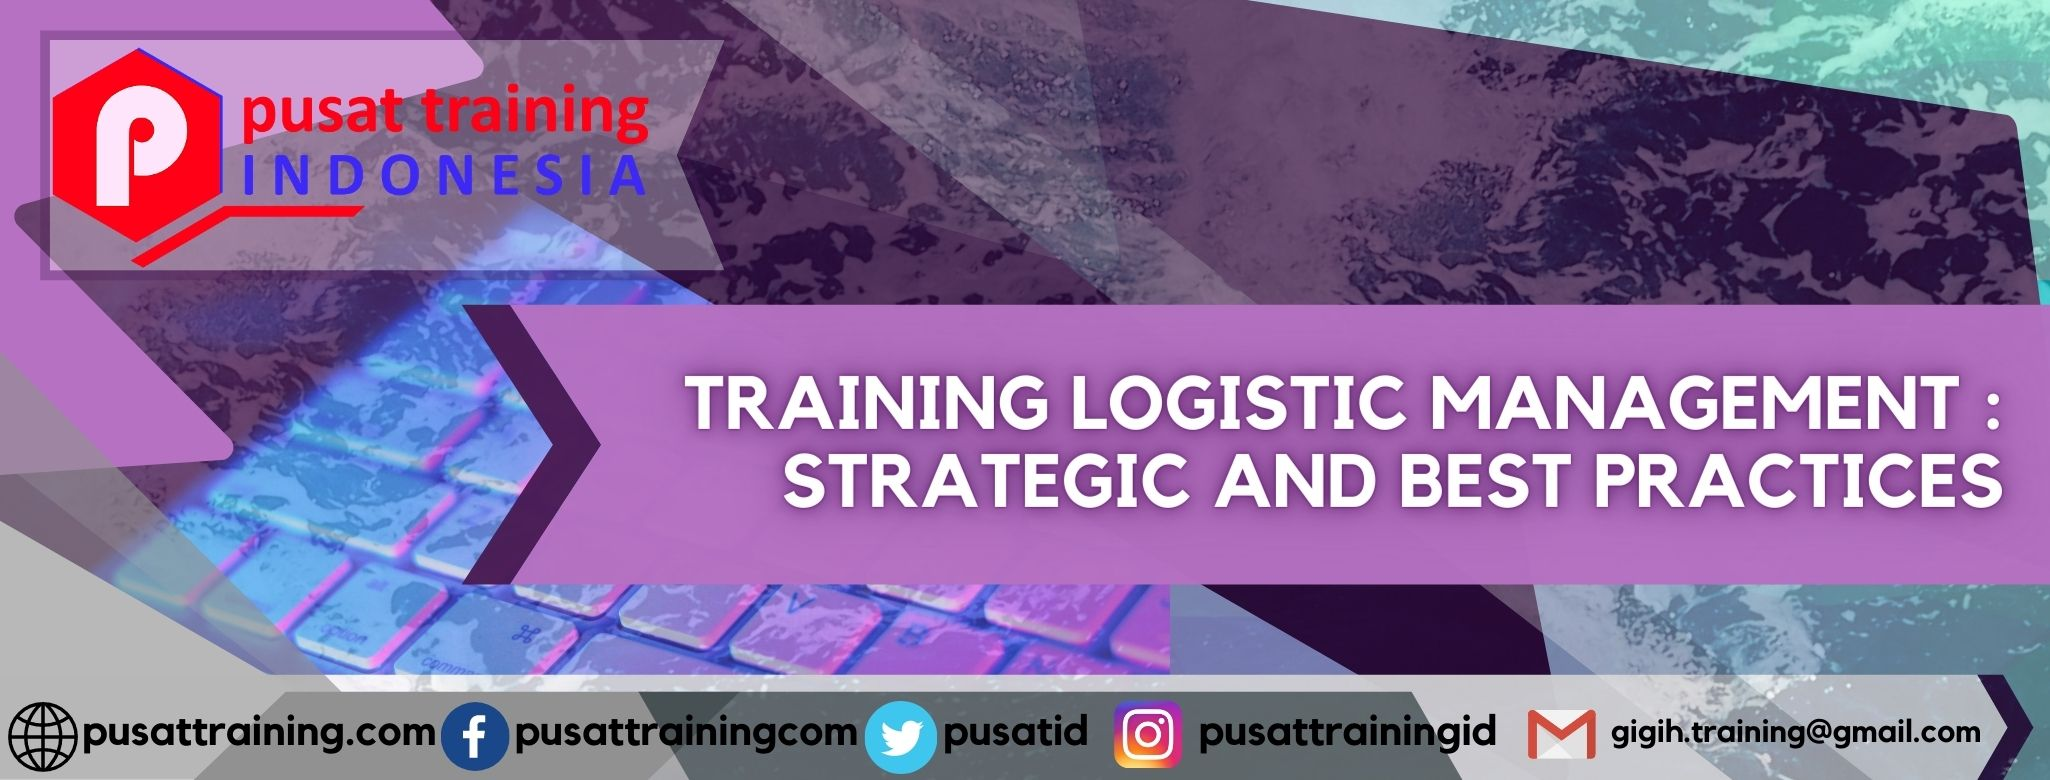 TRAINING LOGISTIC MANAGEMENT STRATEGIC AND BEST PRACTICES